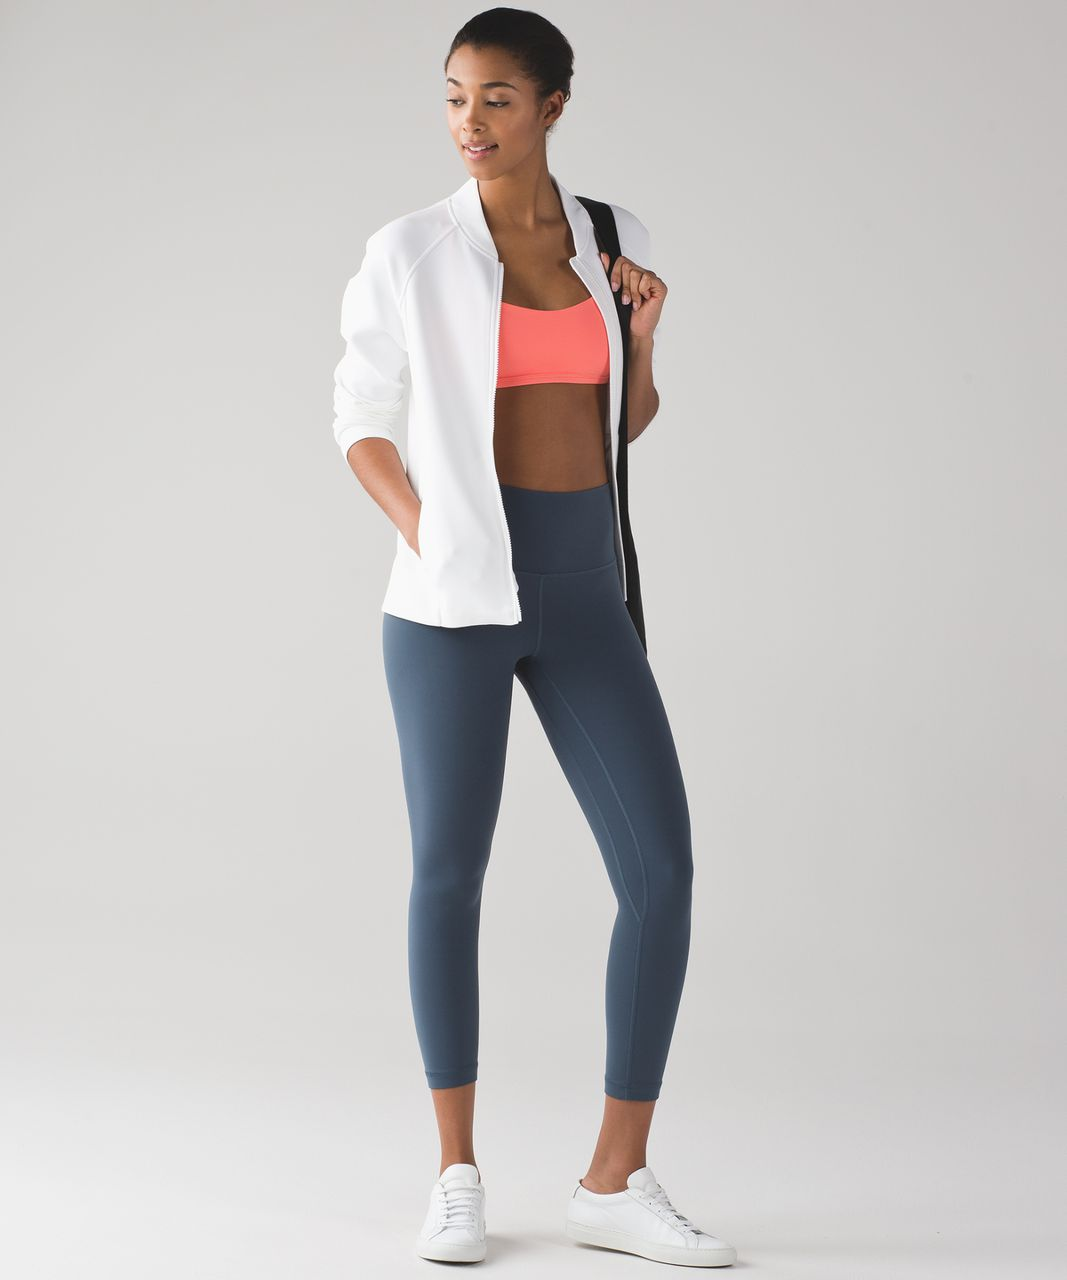 Lululemon Free To Be Bra - Light Lava